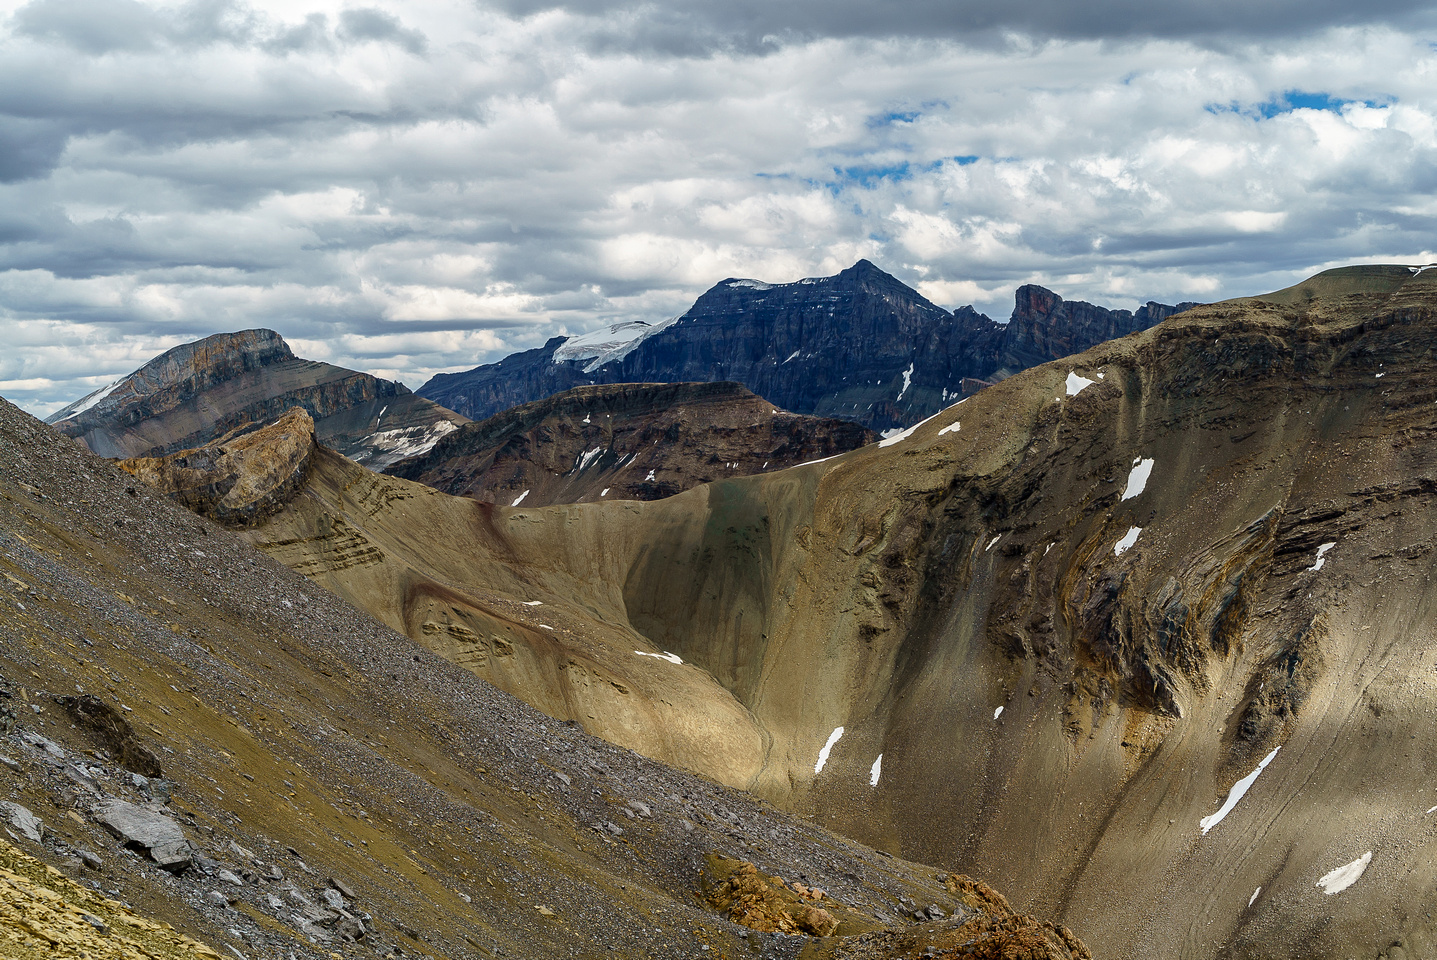 Poboktan Mountain is pretty high and has a glaciated summit.